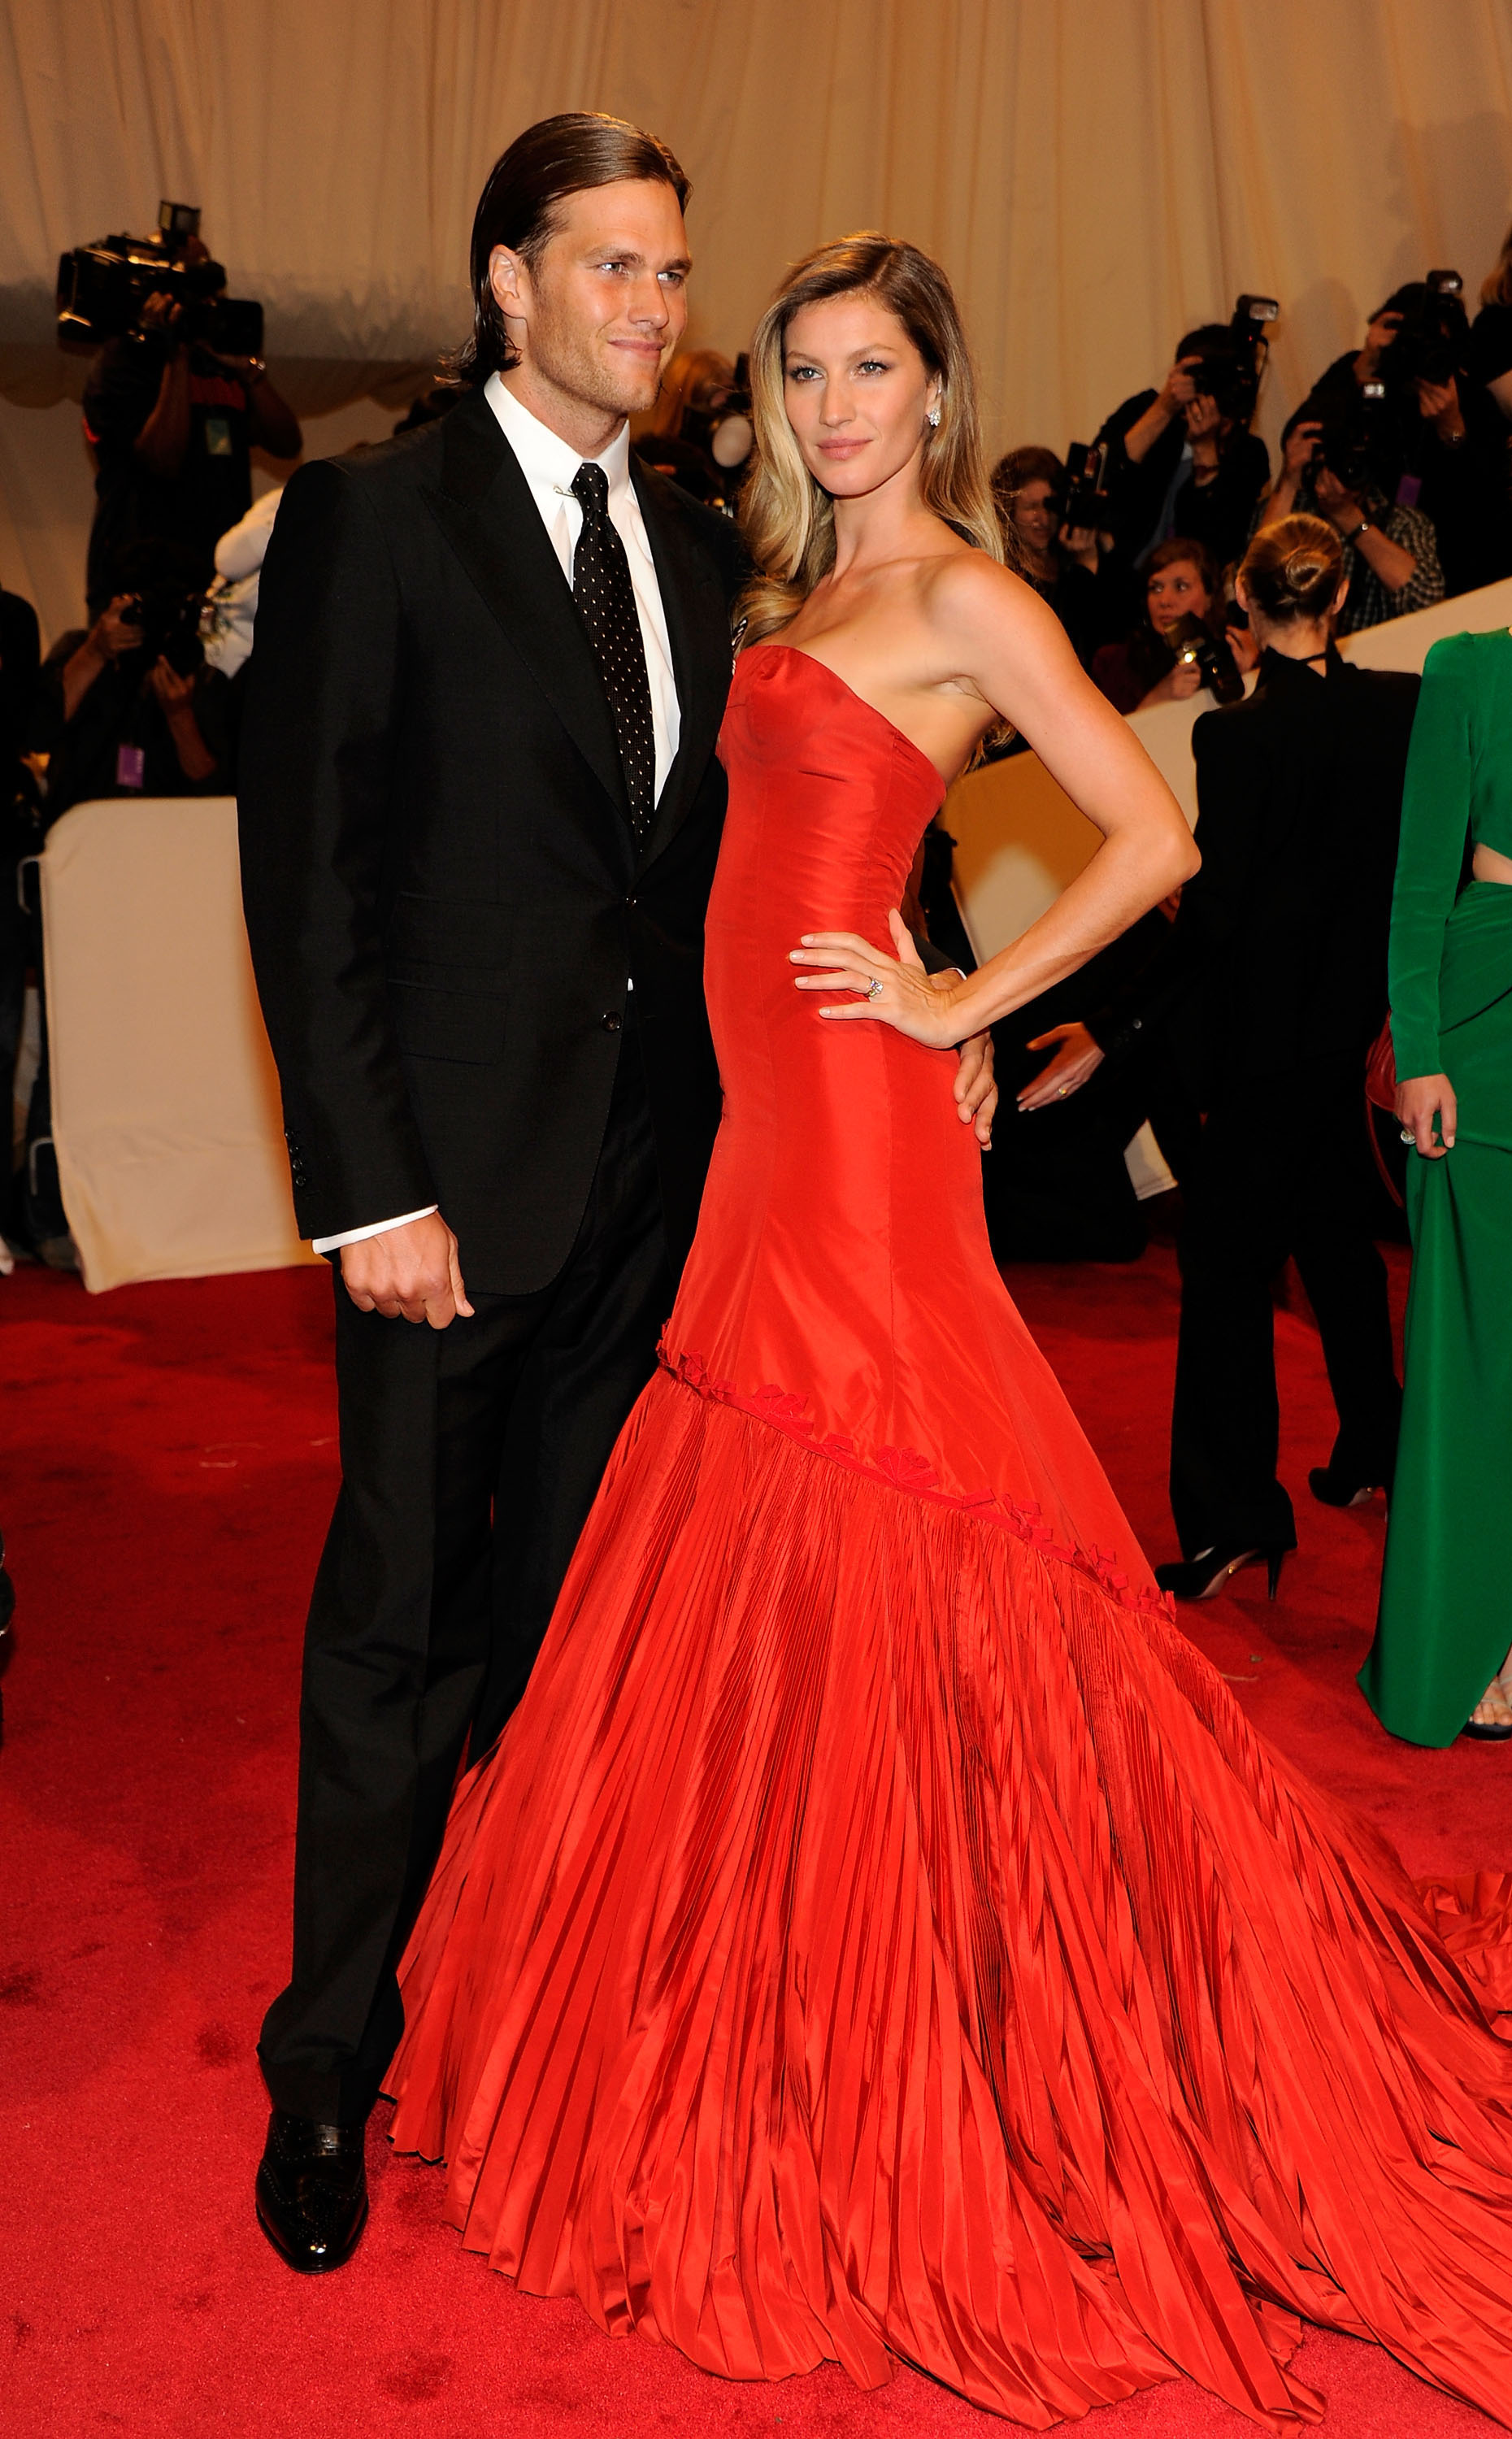 Tom Brady and Gisele Bundchen attends the  Alexander McQueen: Savage Beauty  Costume Institute Gala at The Metropolitan Museum of Art on May 2, 2011 in New York City.